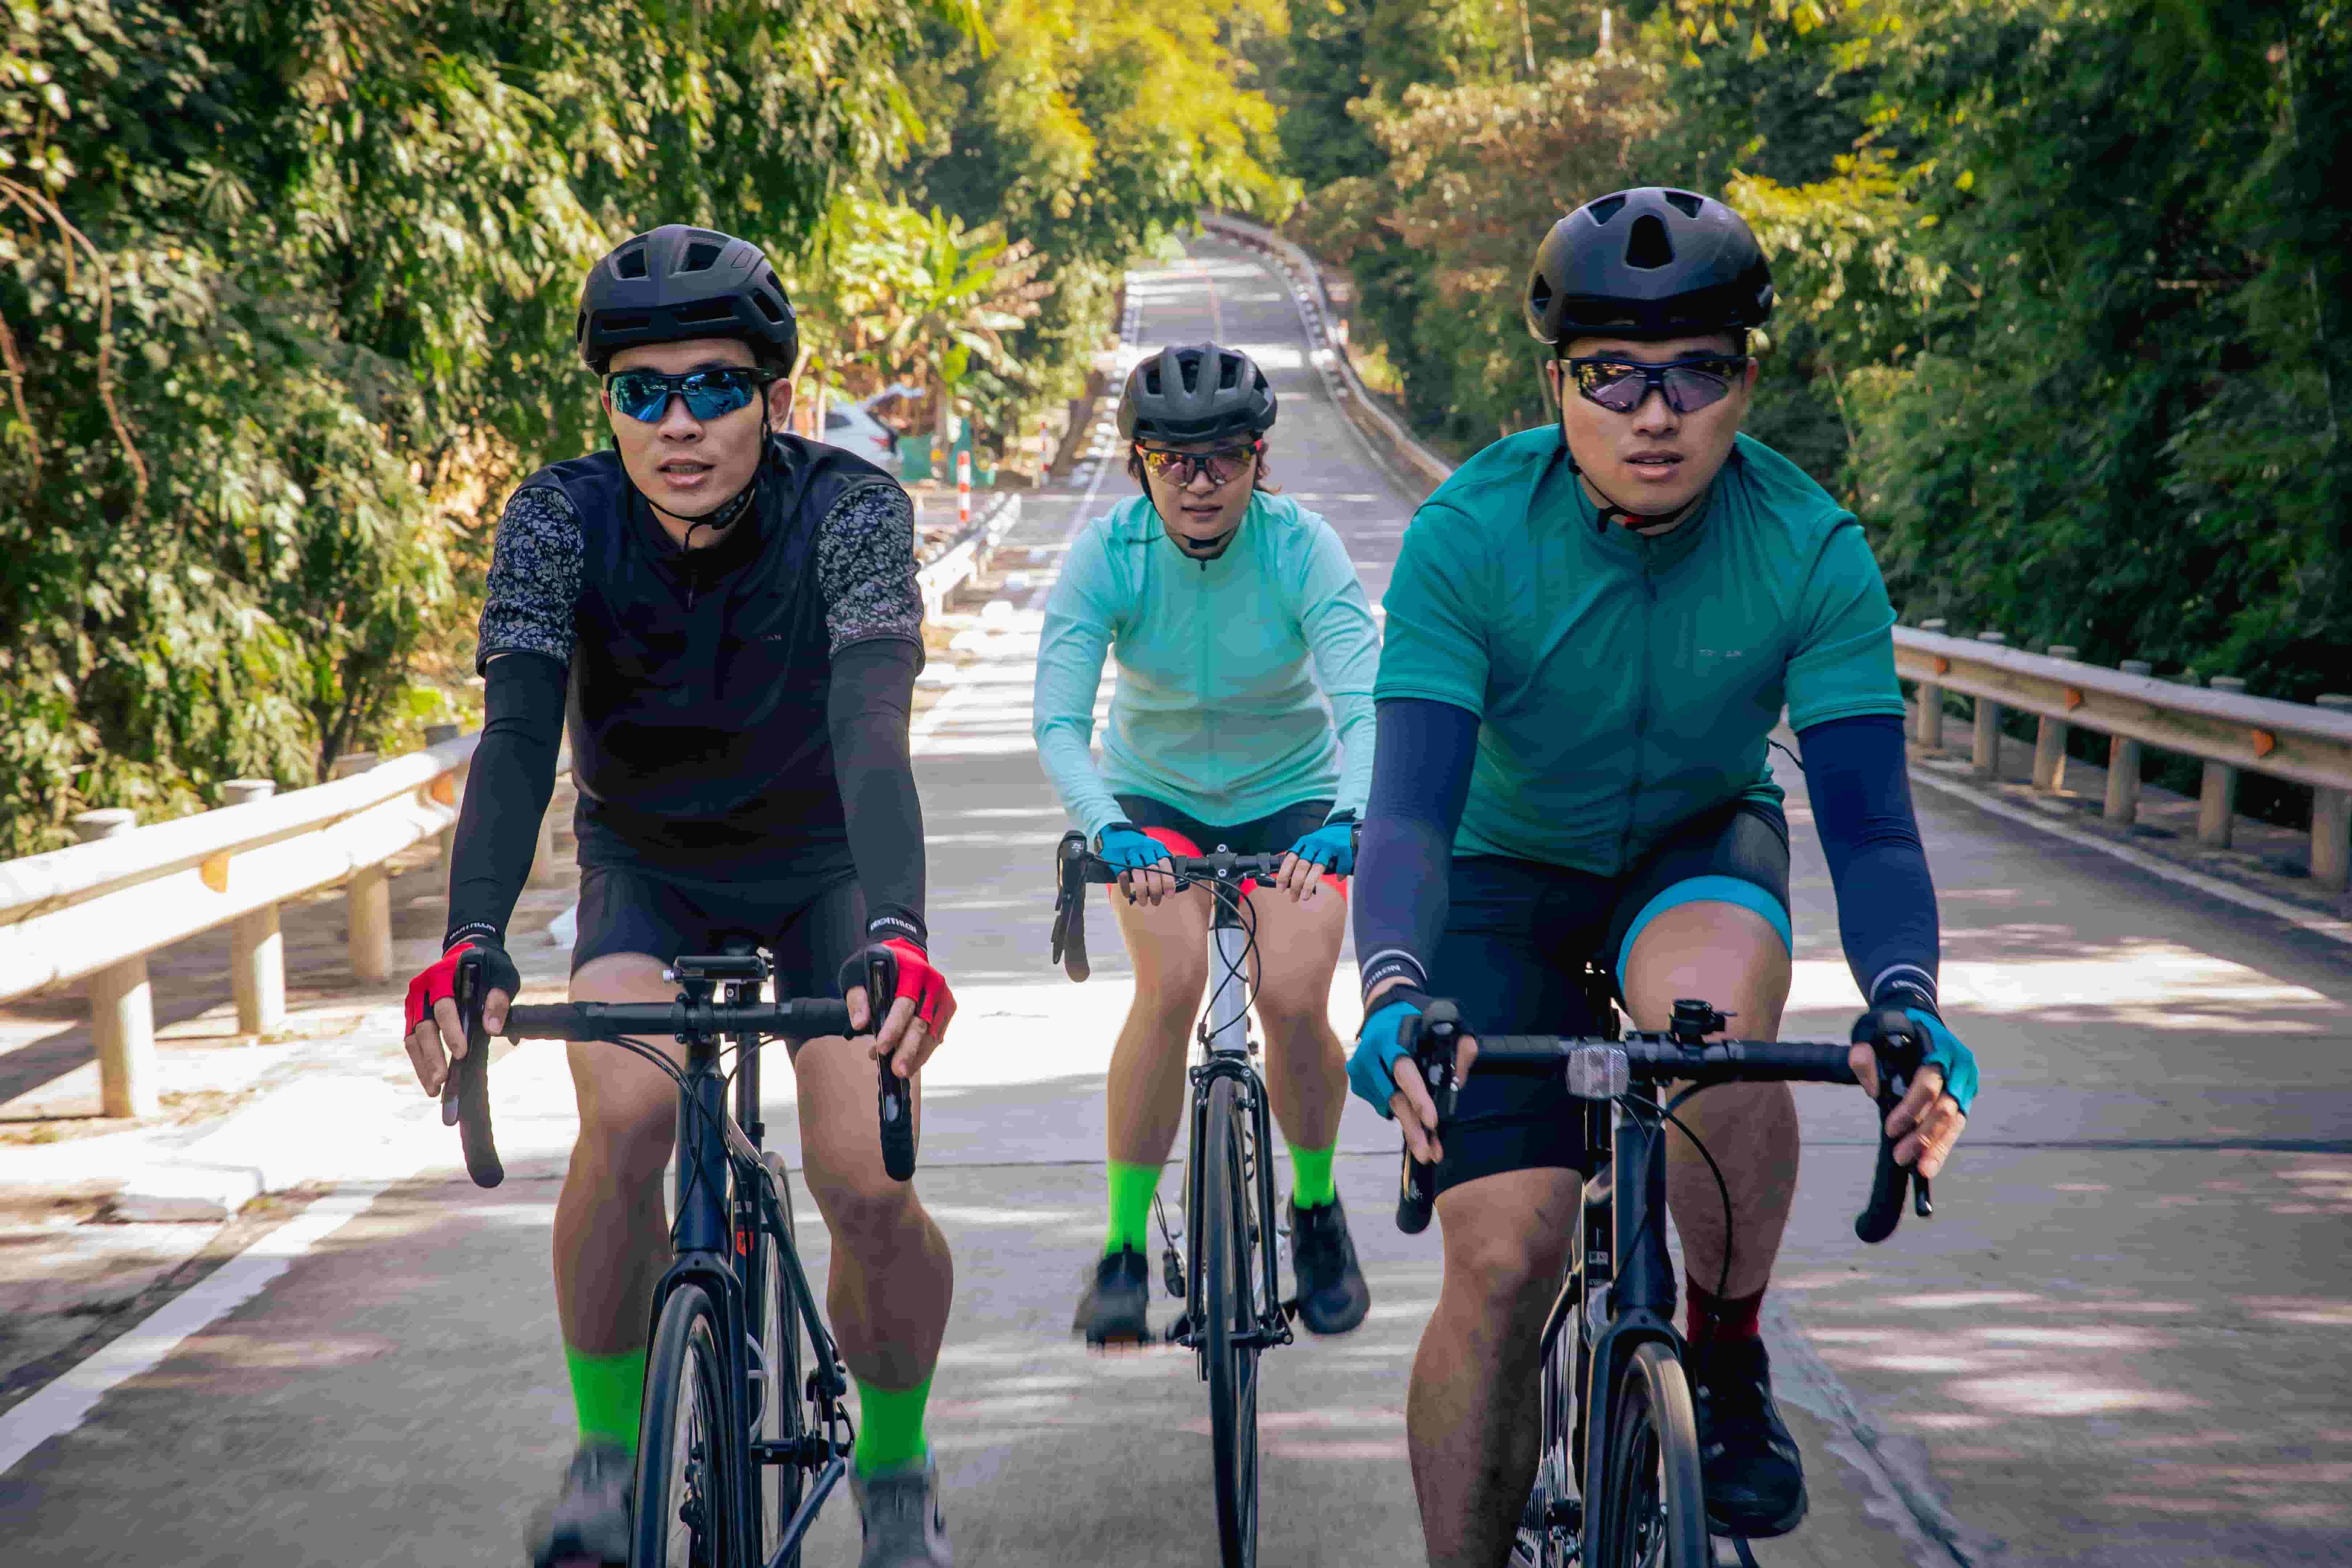 Top 5 Benefits Of Cycling